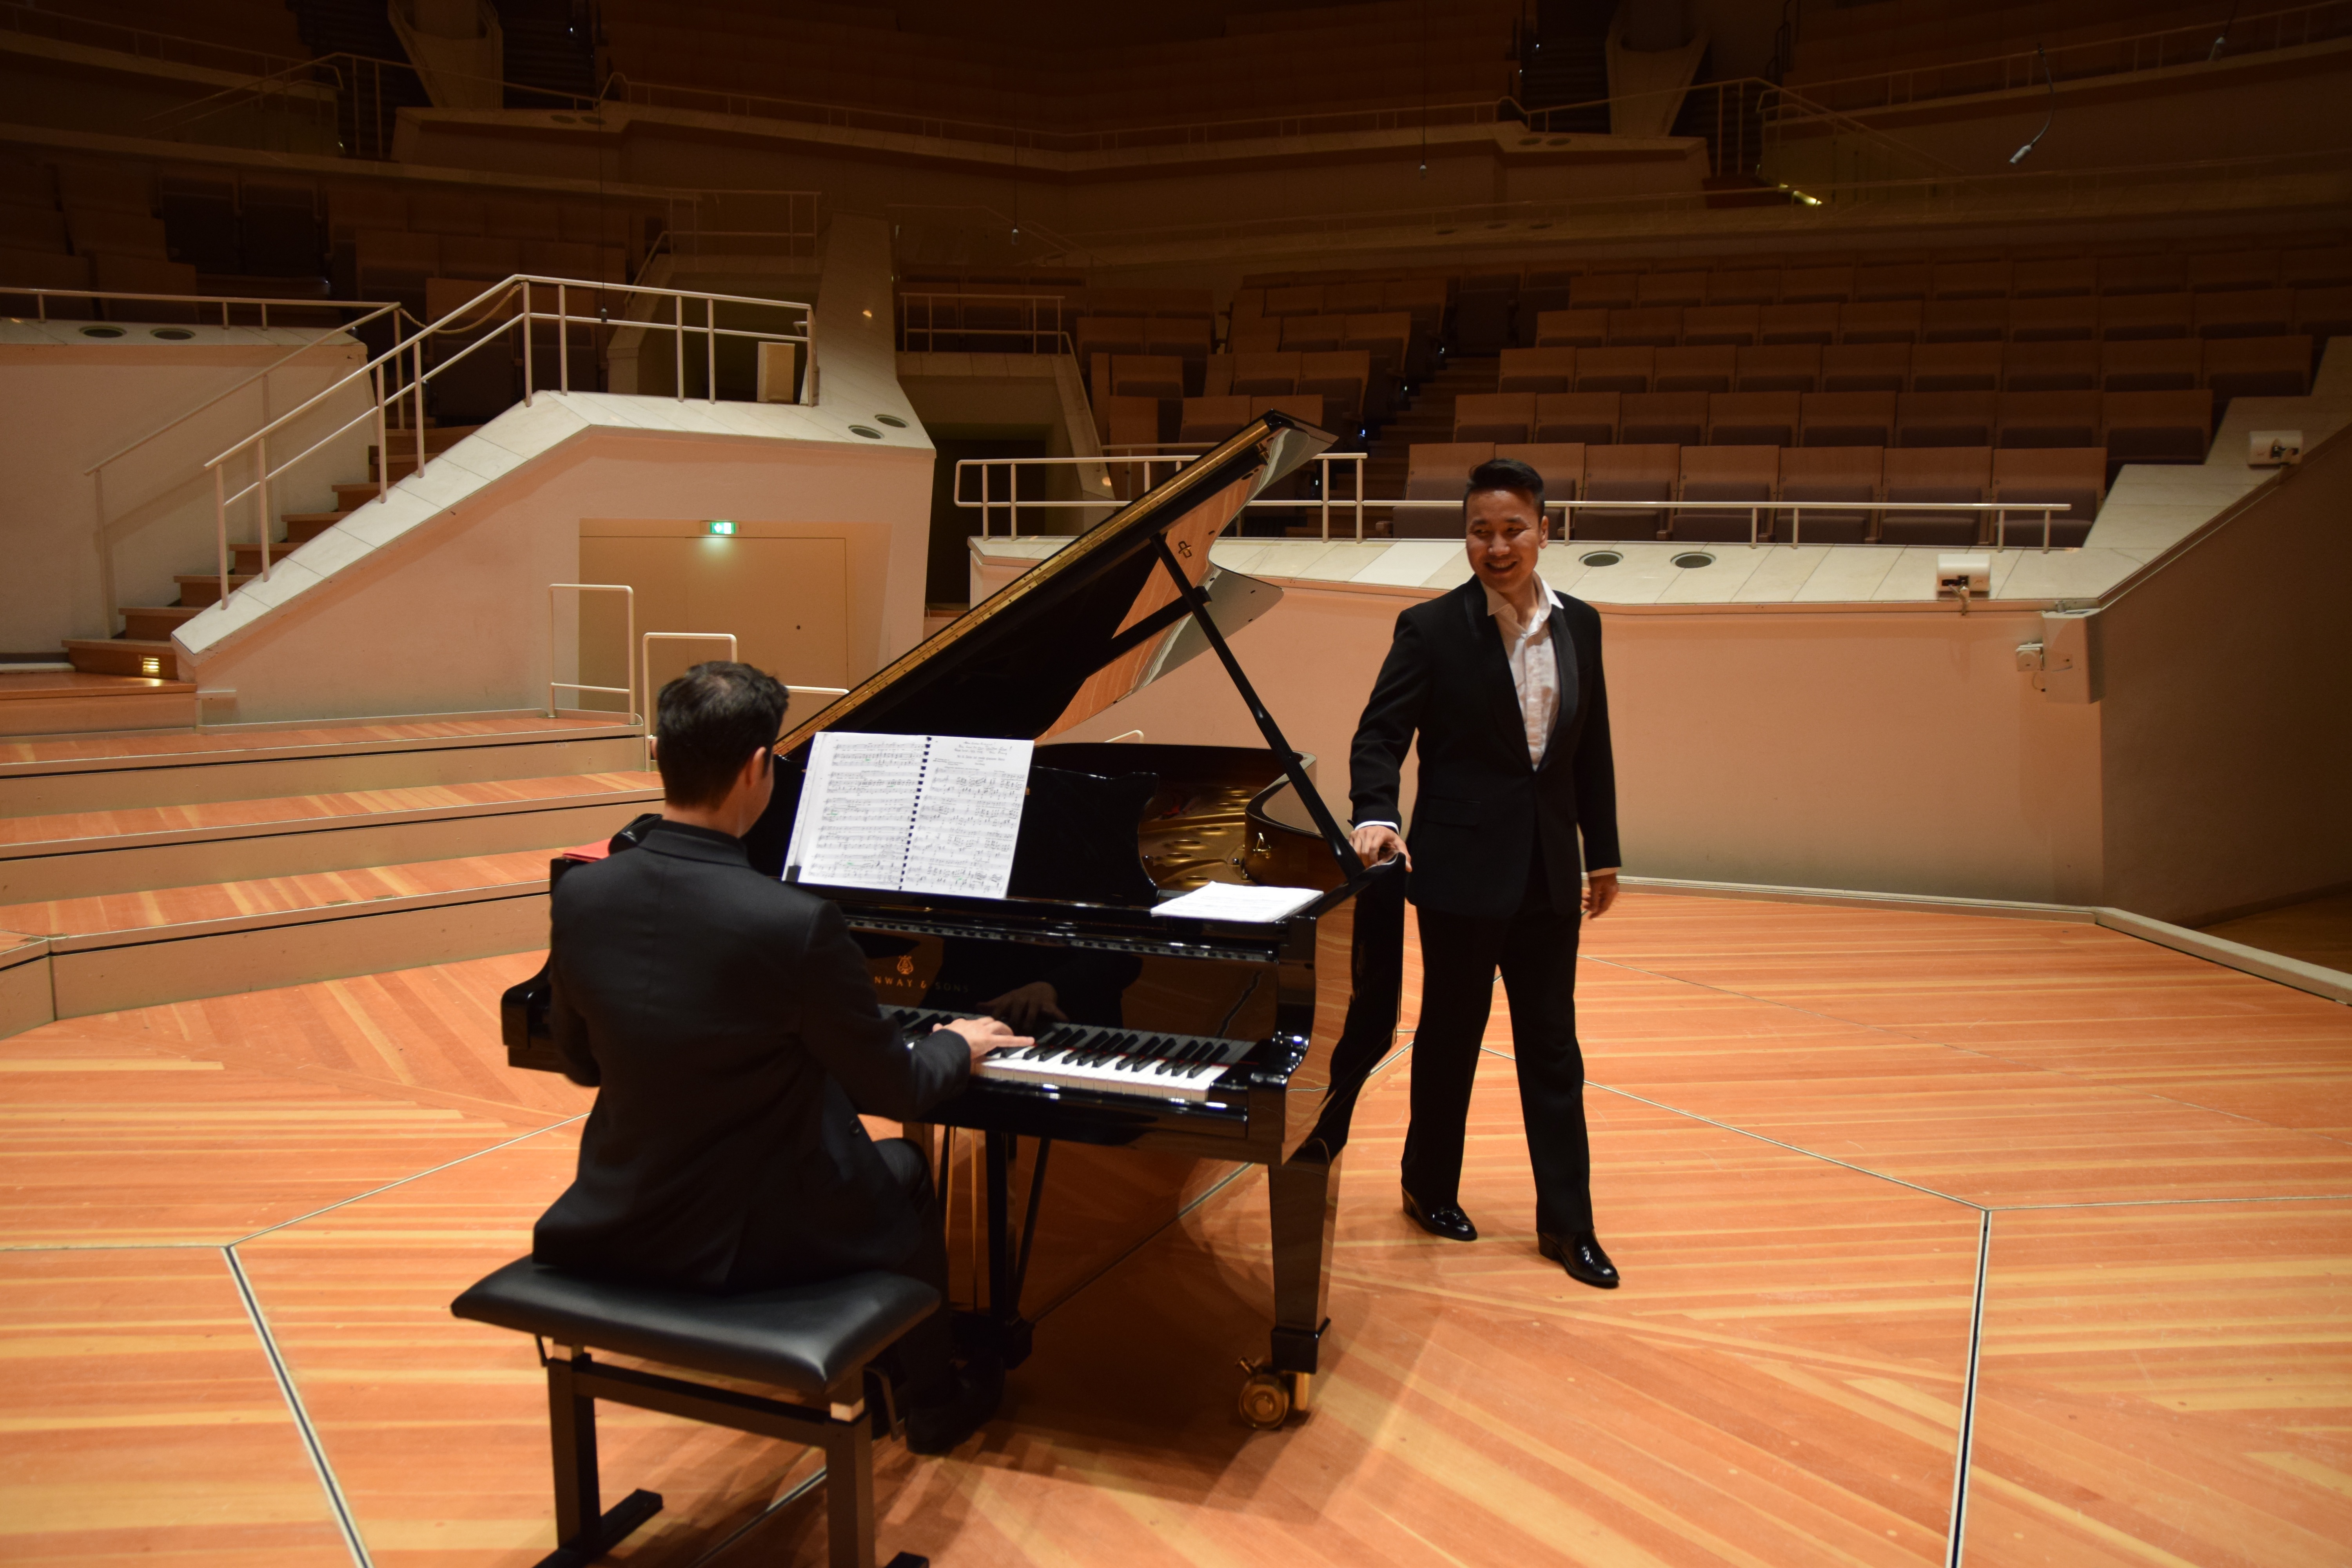 berliner music competition 57